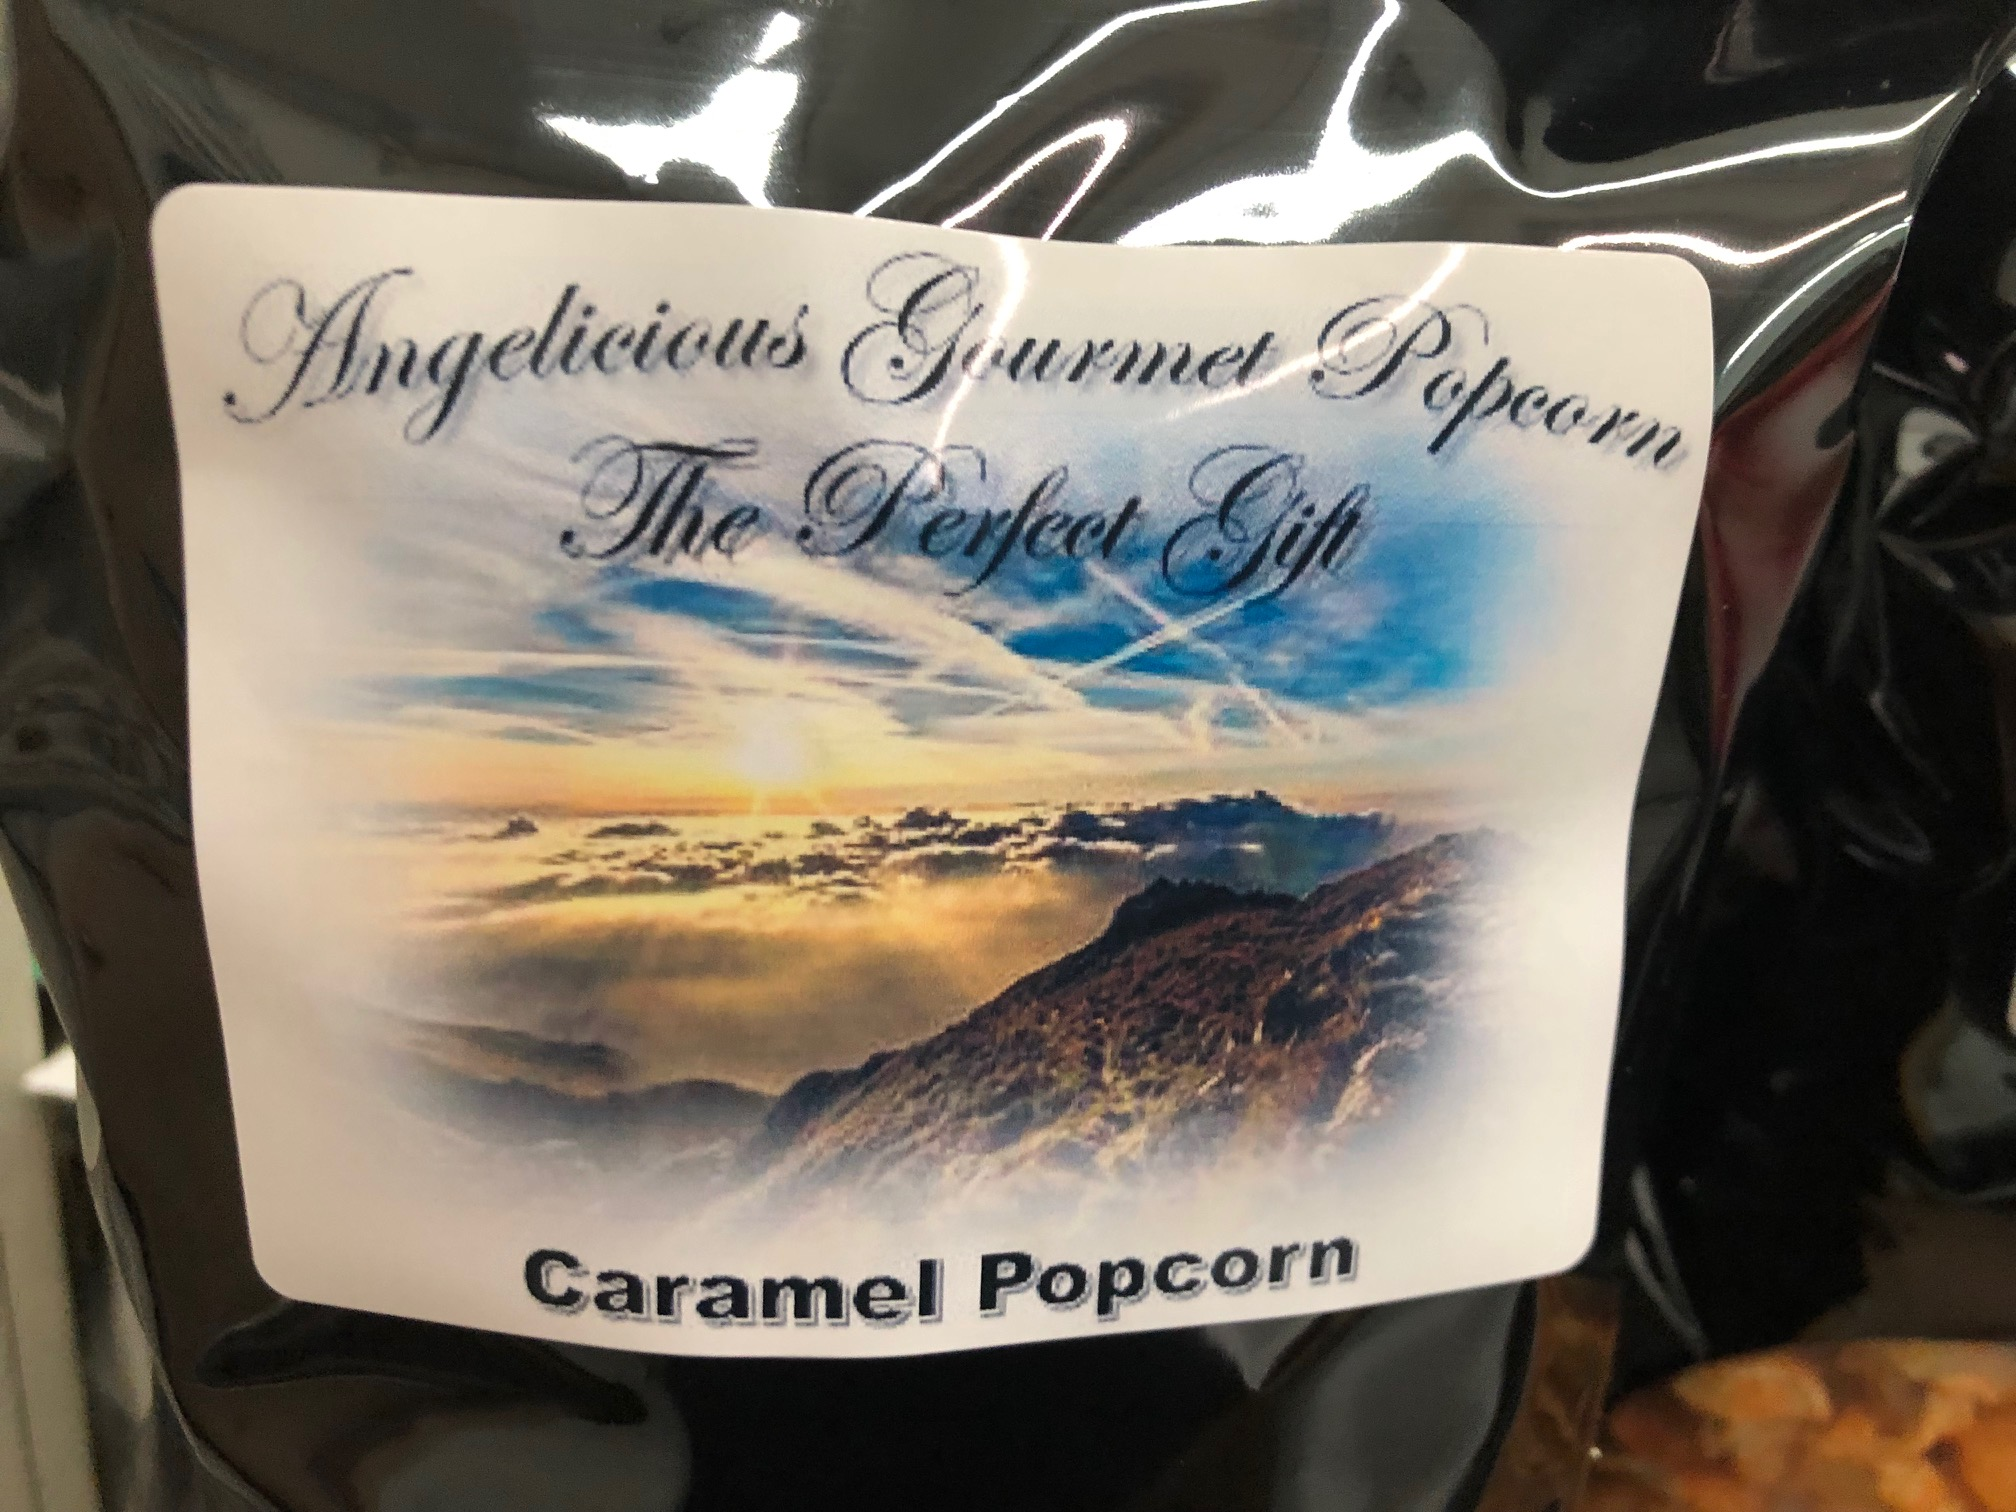 Bagged Popcorn 15.75 cups Caramel